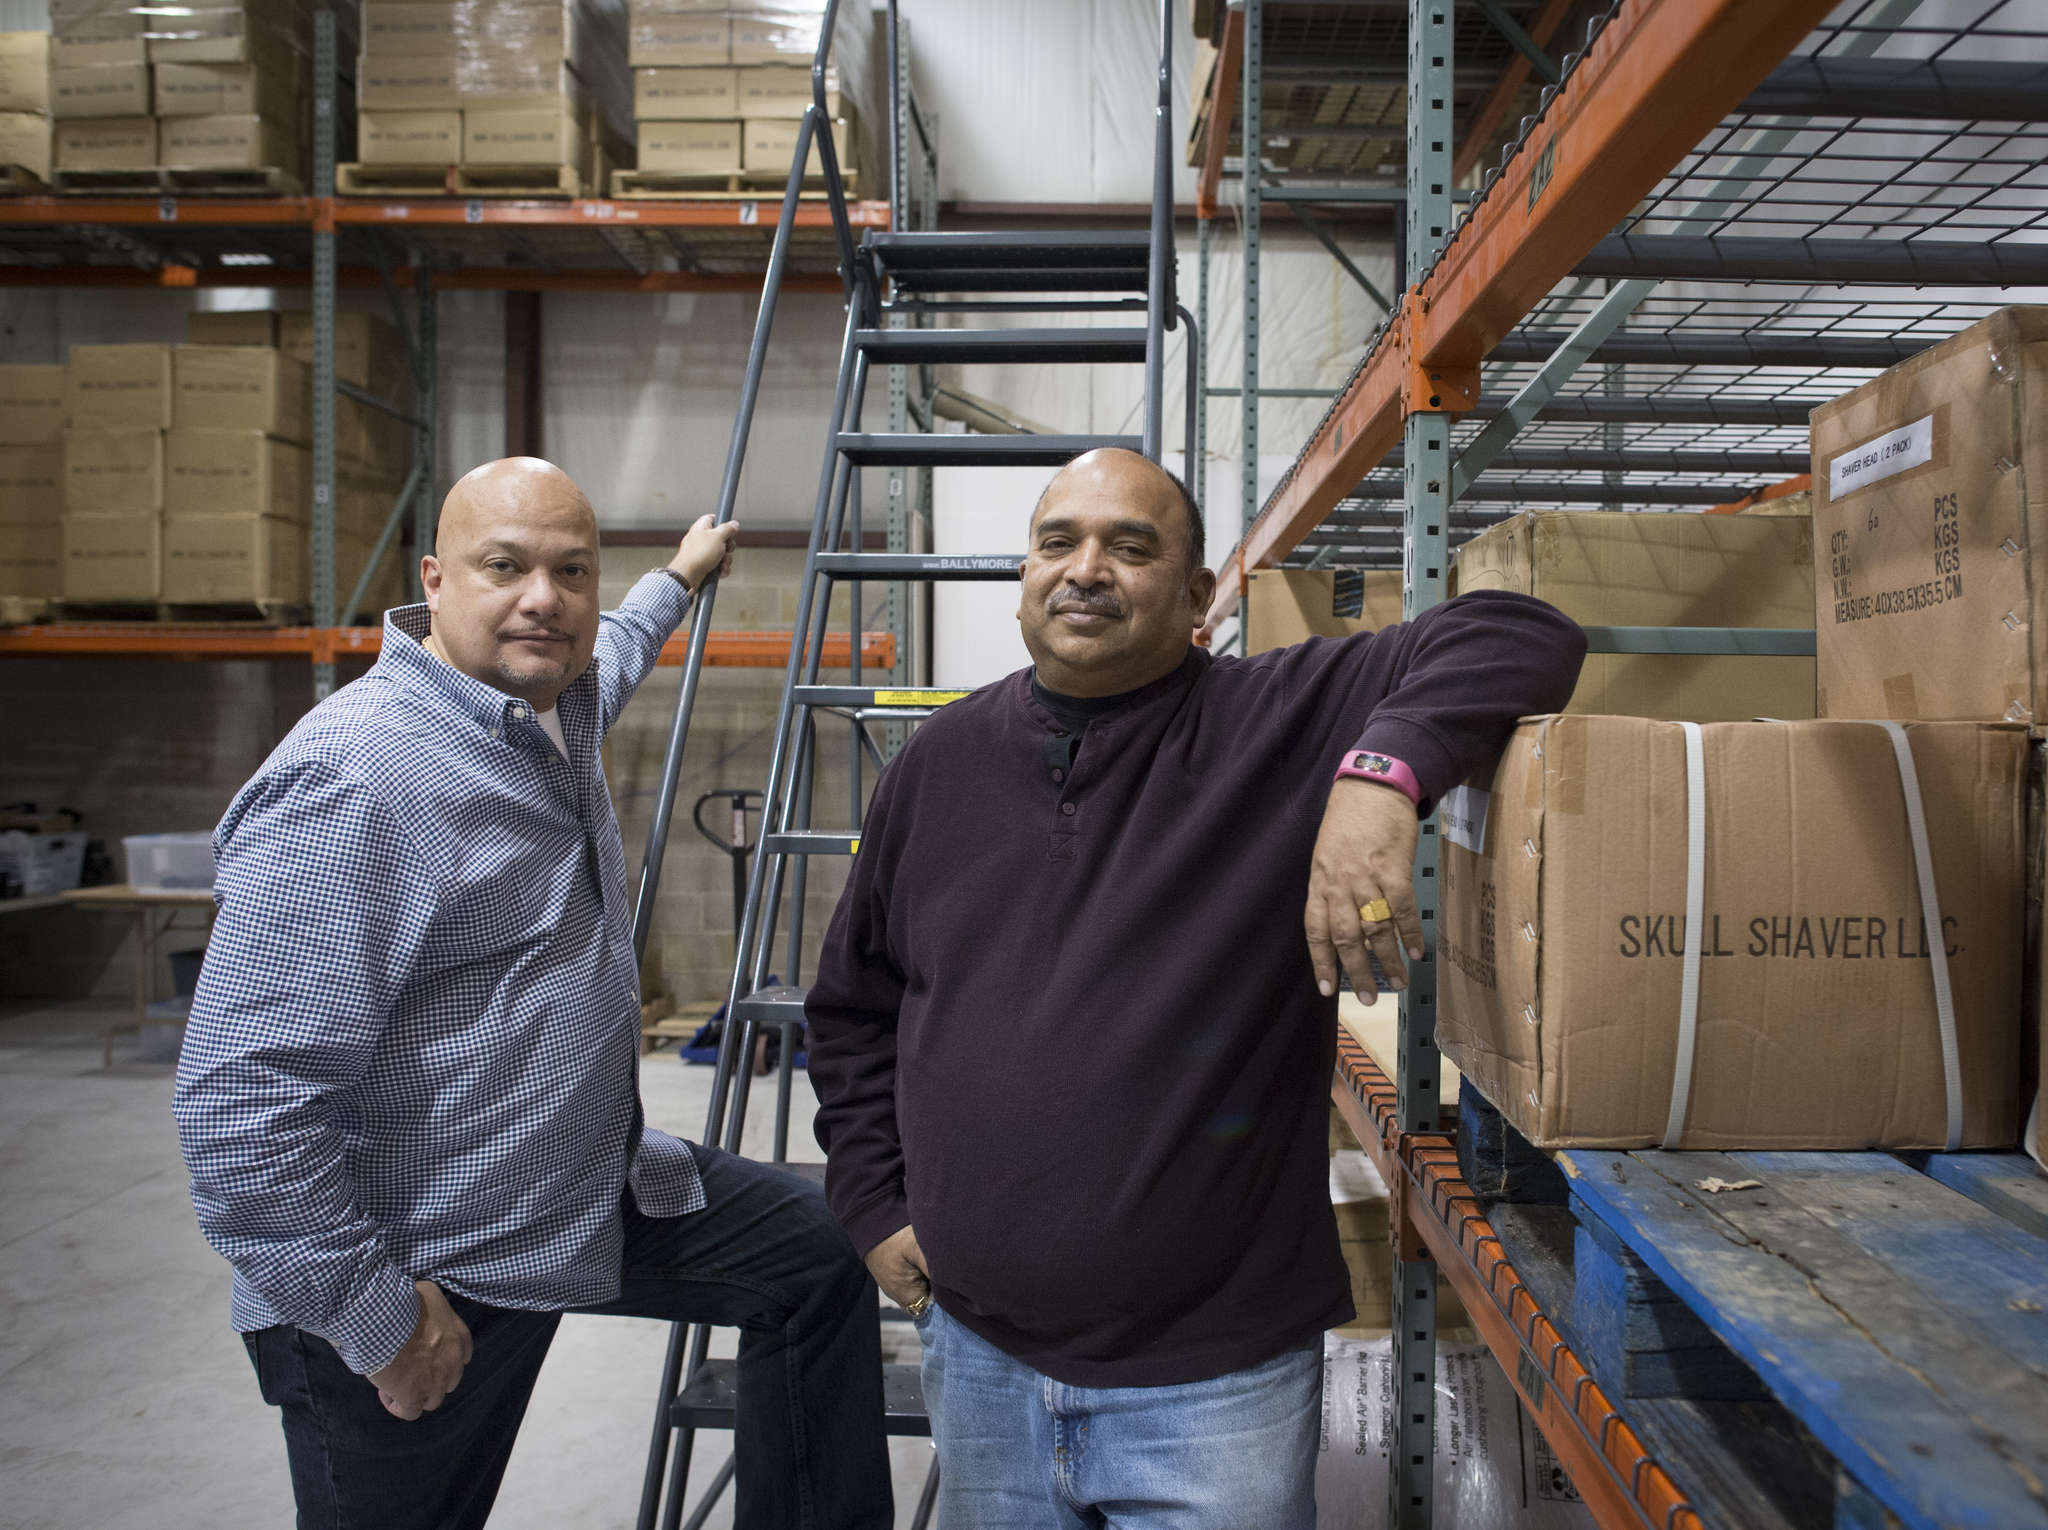 John Lyles (left) and Neel Kulshreshtha at their new warehouse in Moorestown. Lyles came up with the idea for the Skull Shaver company after he began shaving his own head.